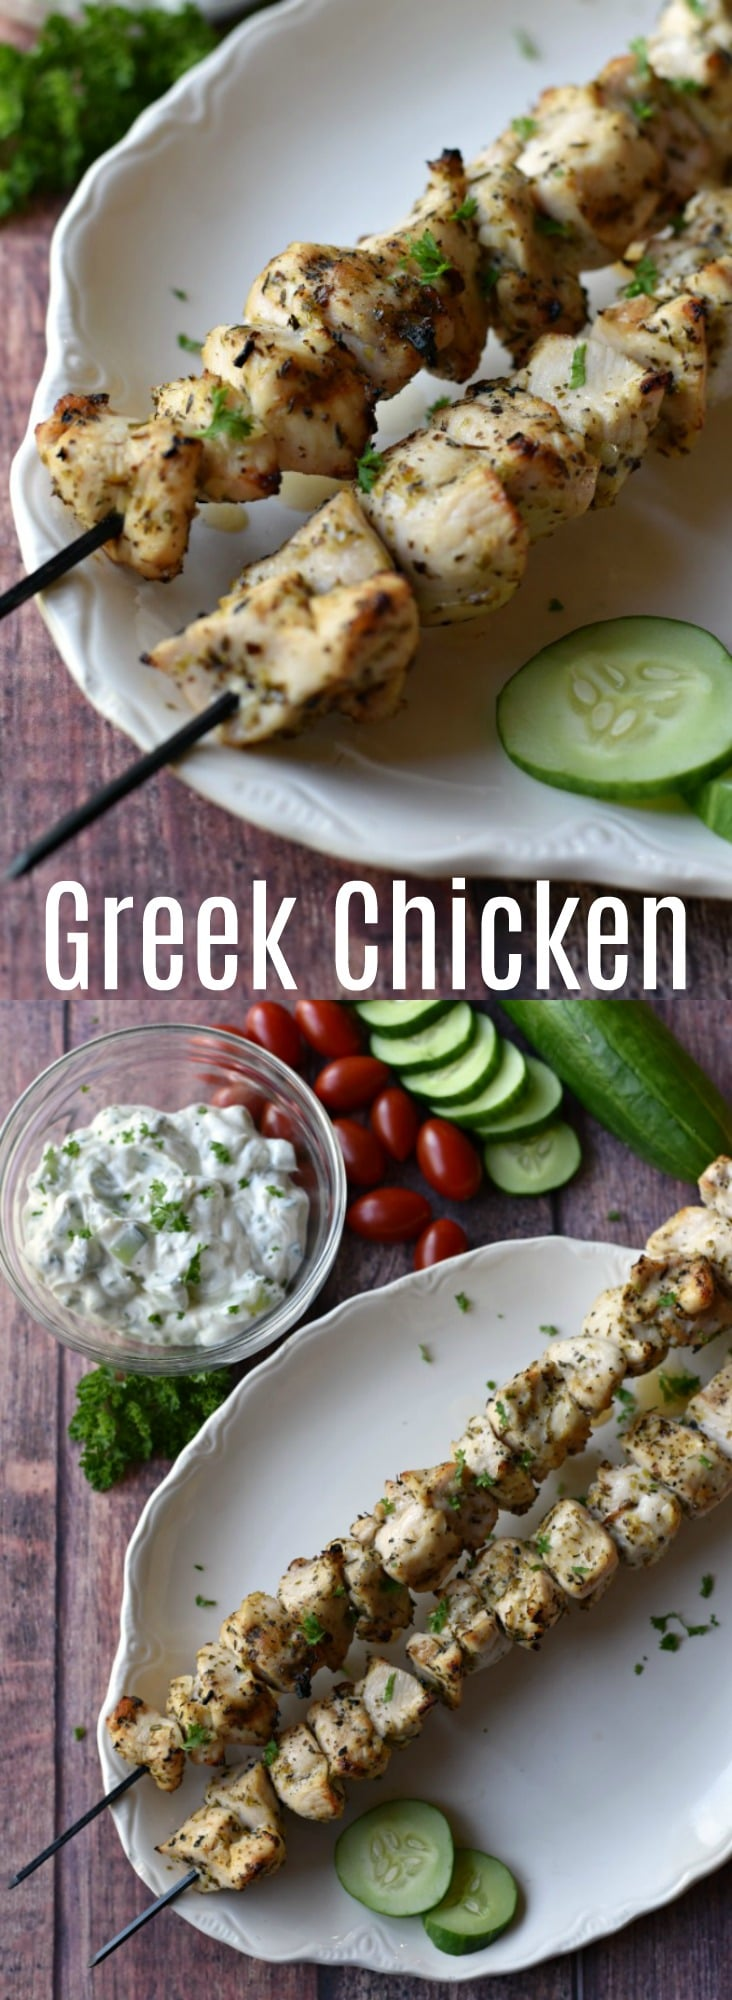 This easy greek grilled chicken recipe is perfect for busy weeknights! Just a few simple ingredients and 30 minutes and you have a meal your family will love!